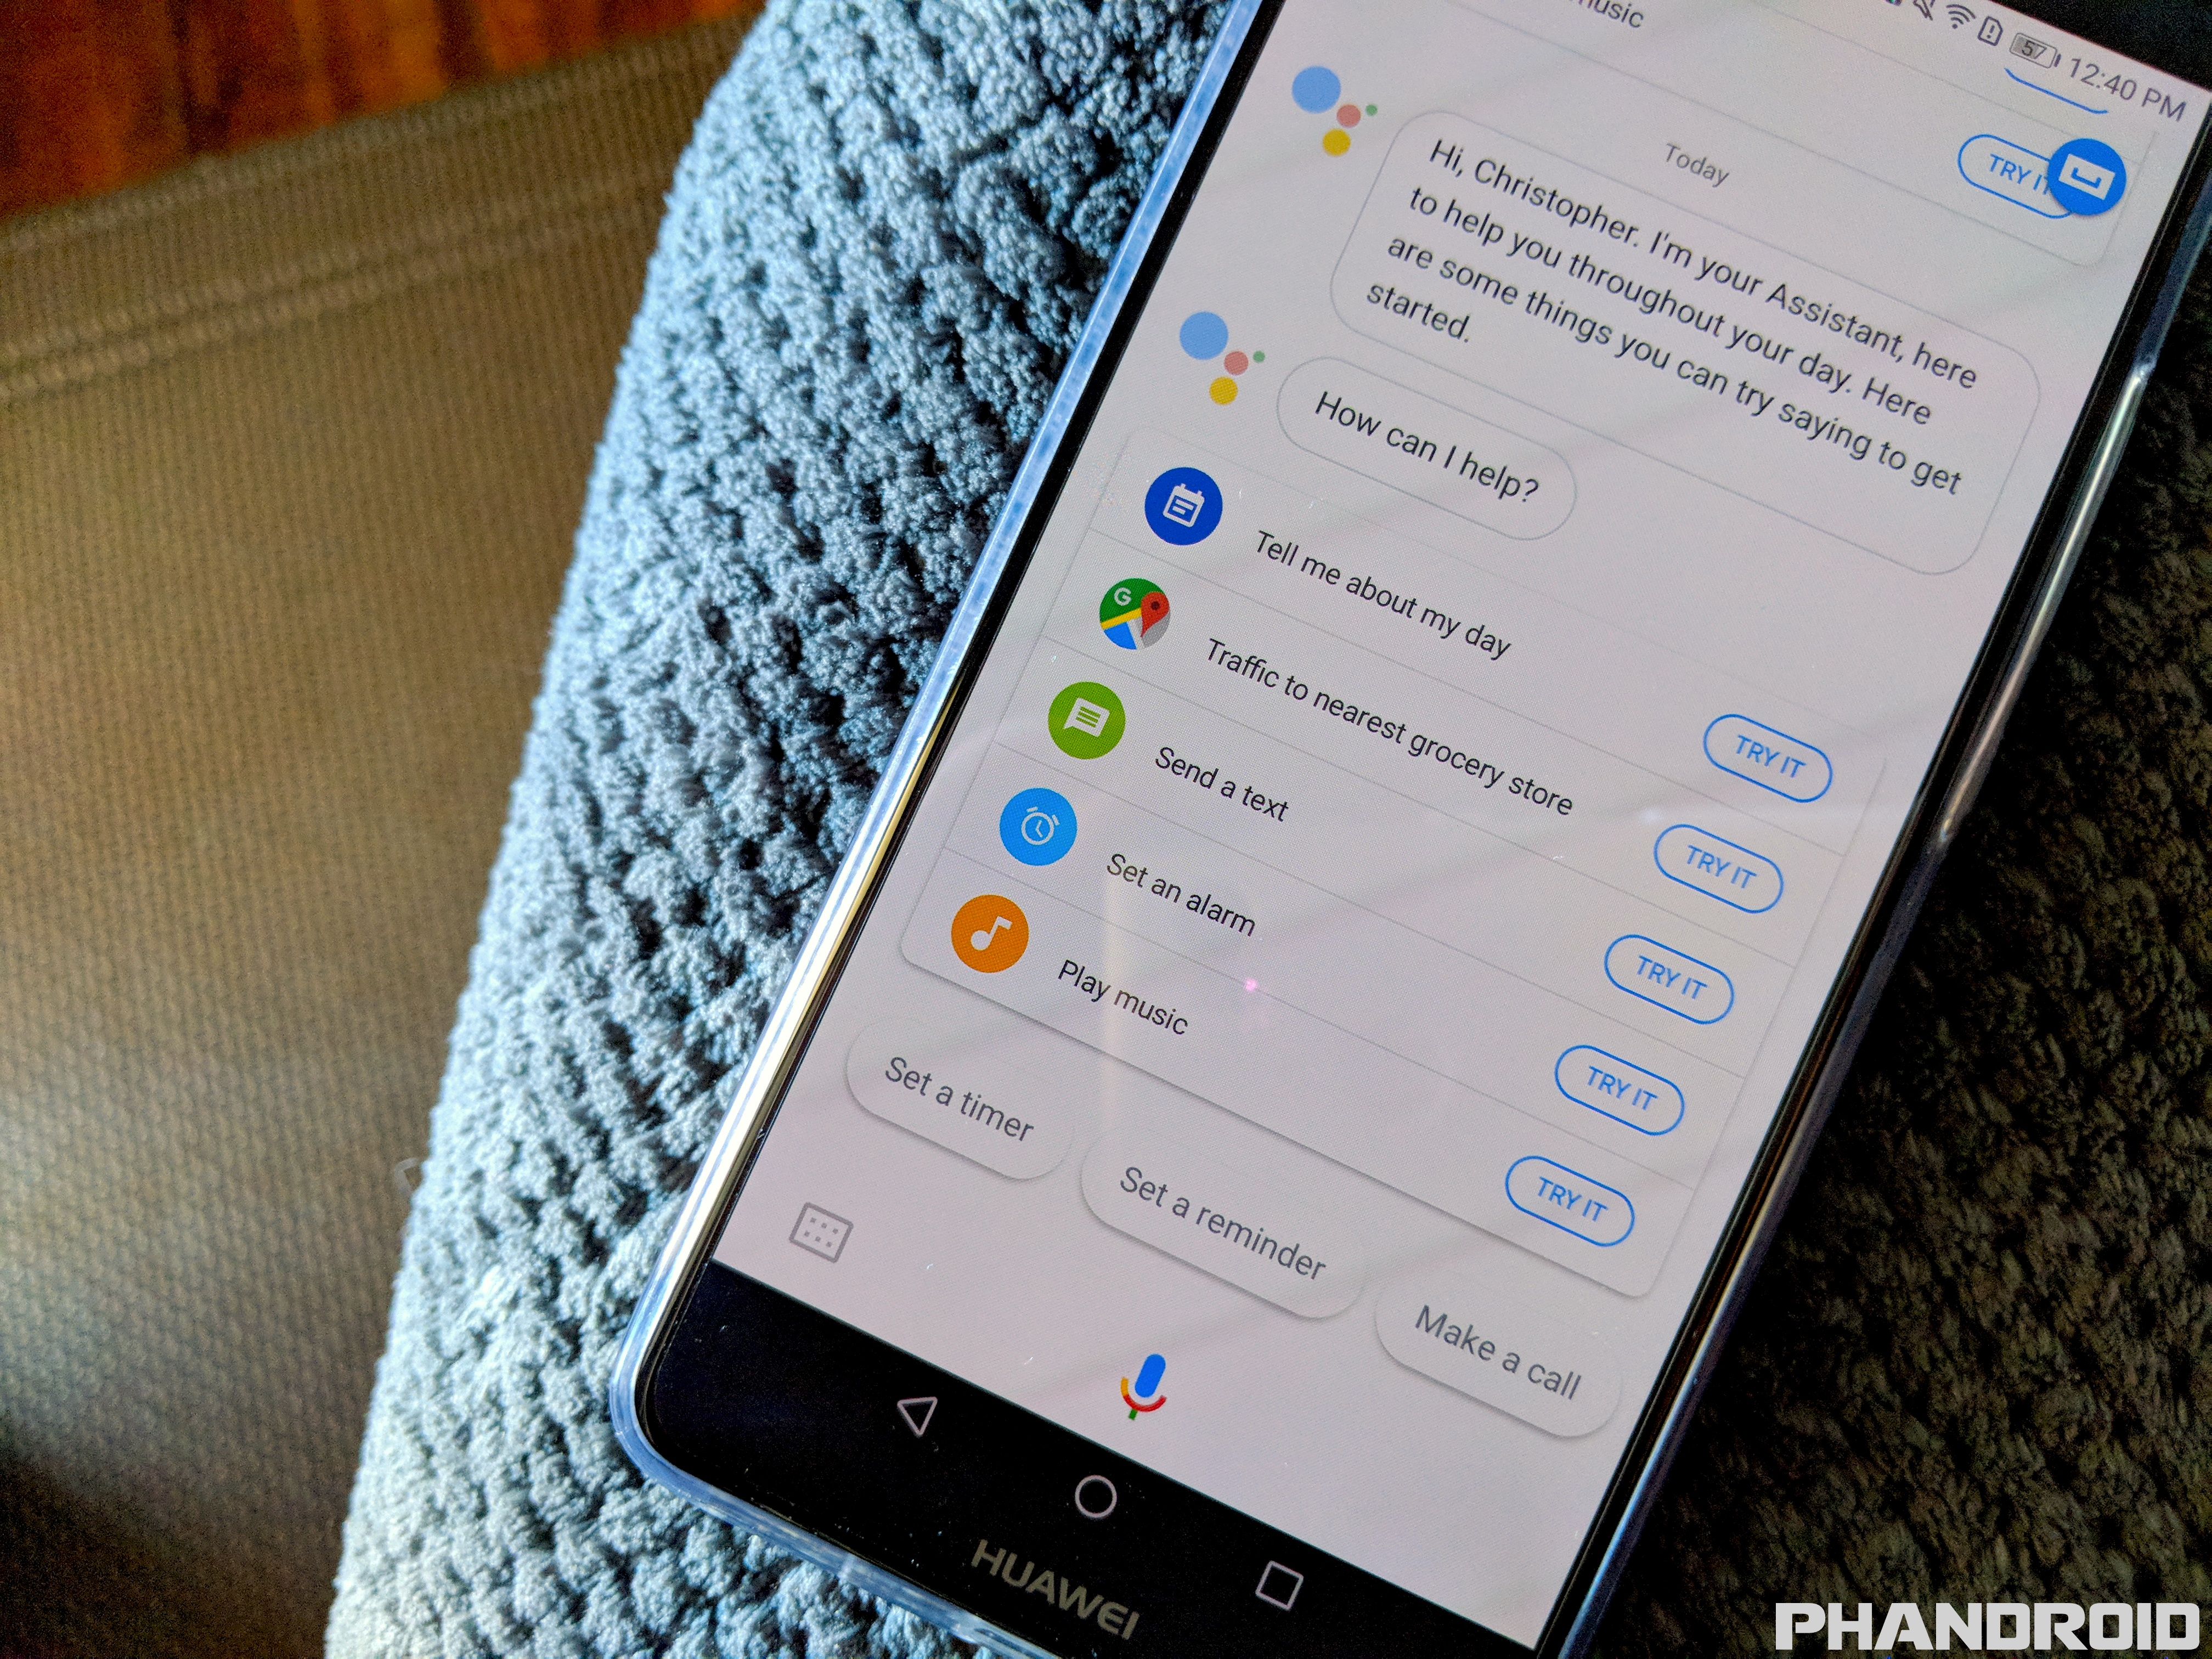 Google Assistant's can finally ready messages from WhatsApp